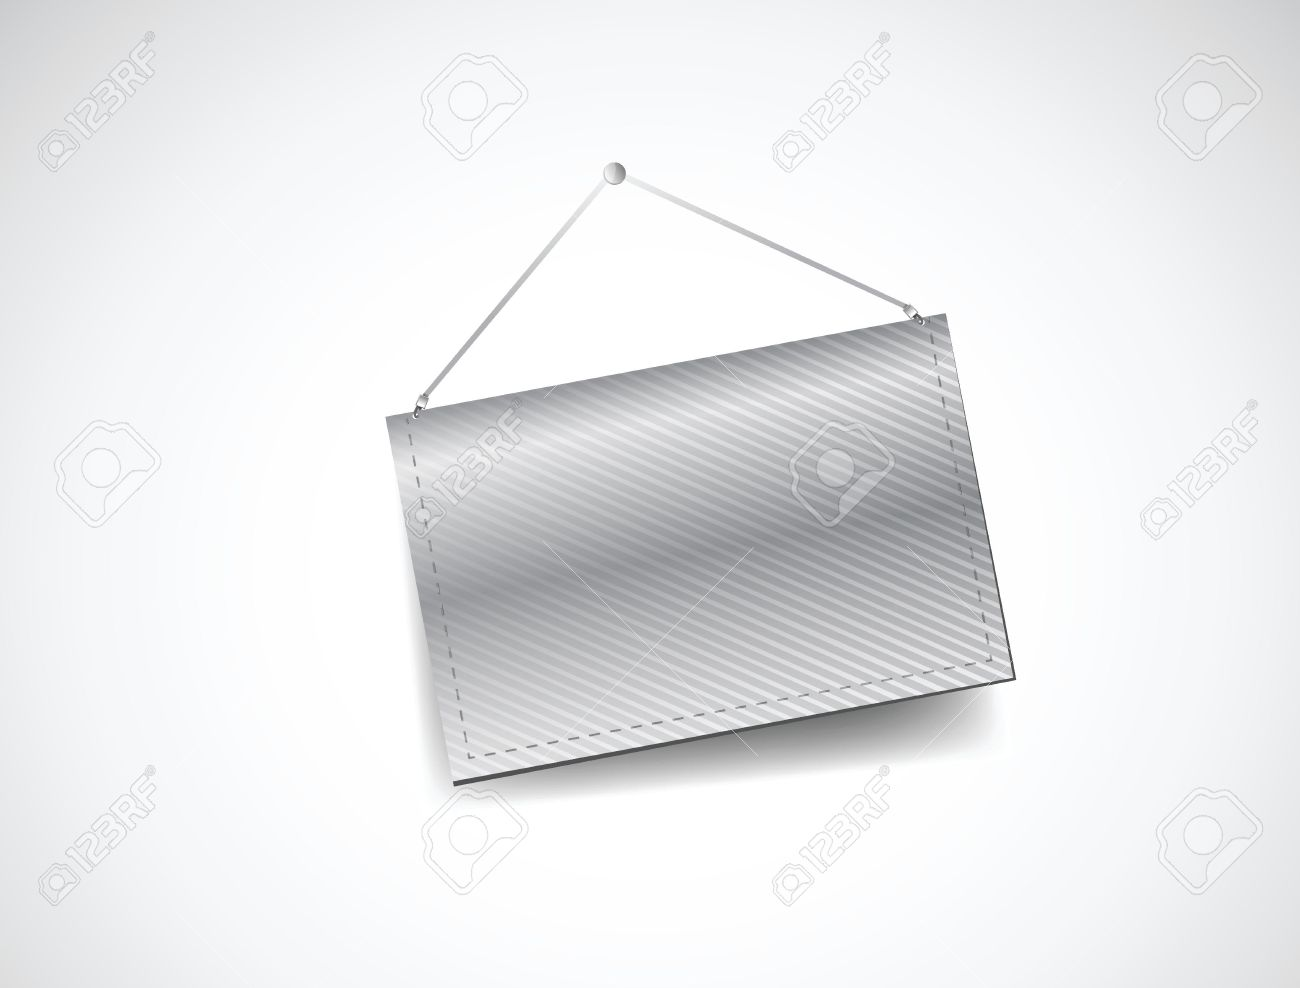 Wall Hanging Blank Template Banner Illustration Design Over White.